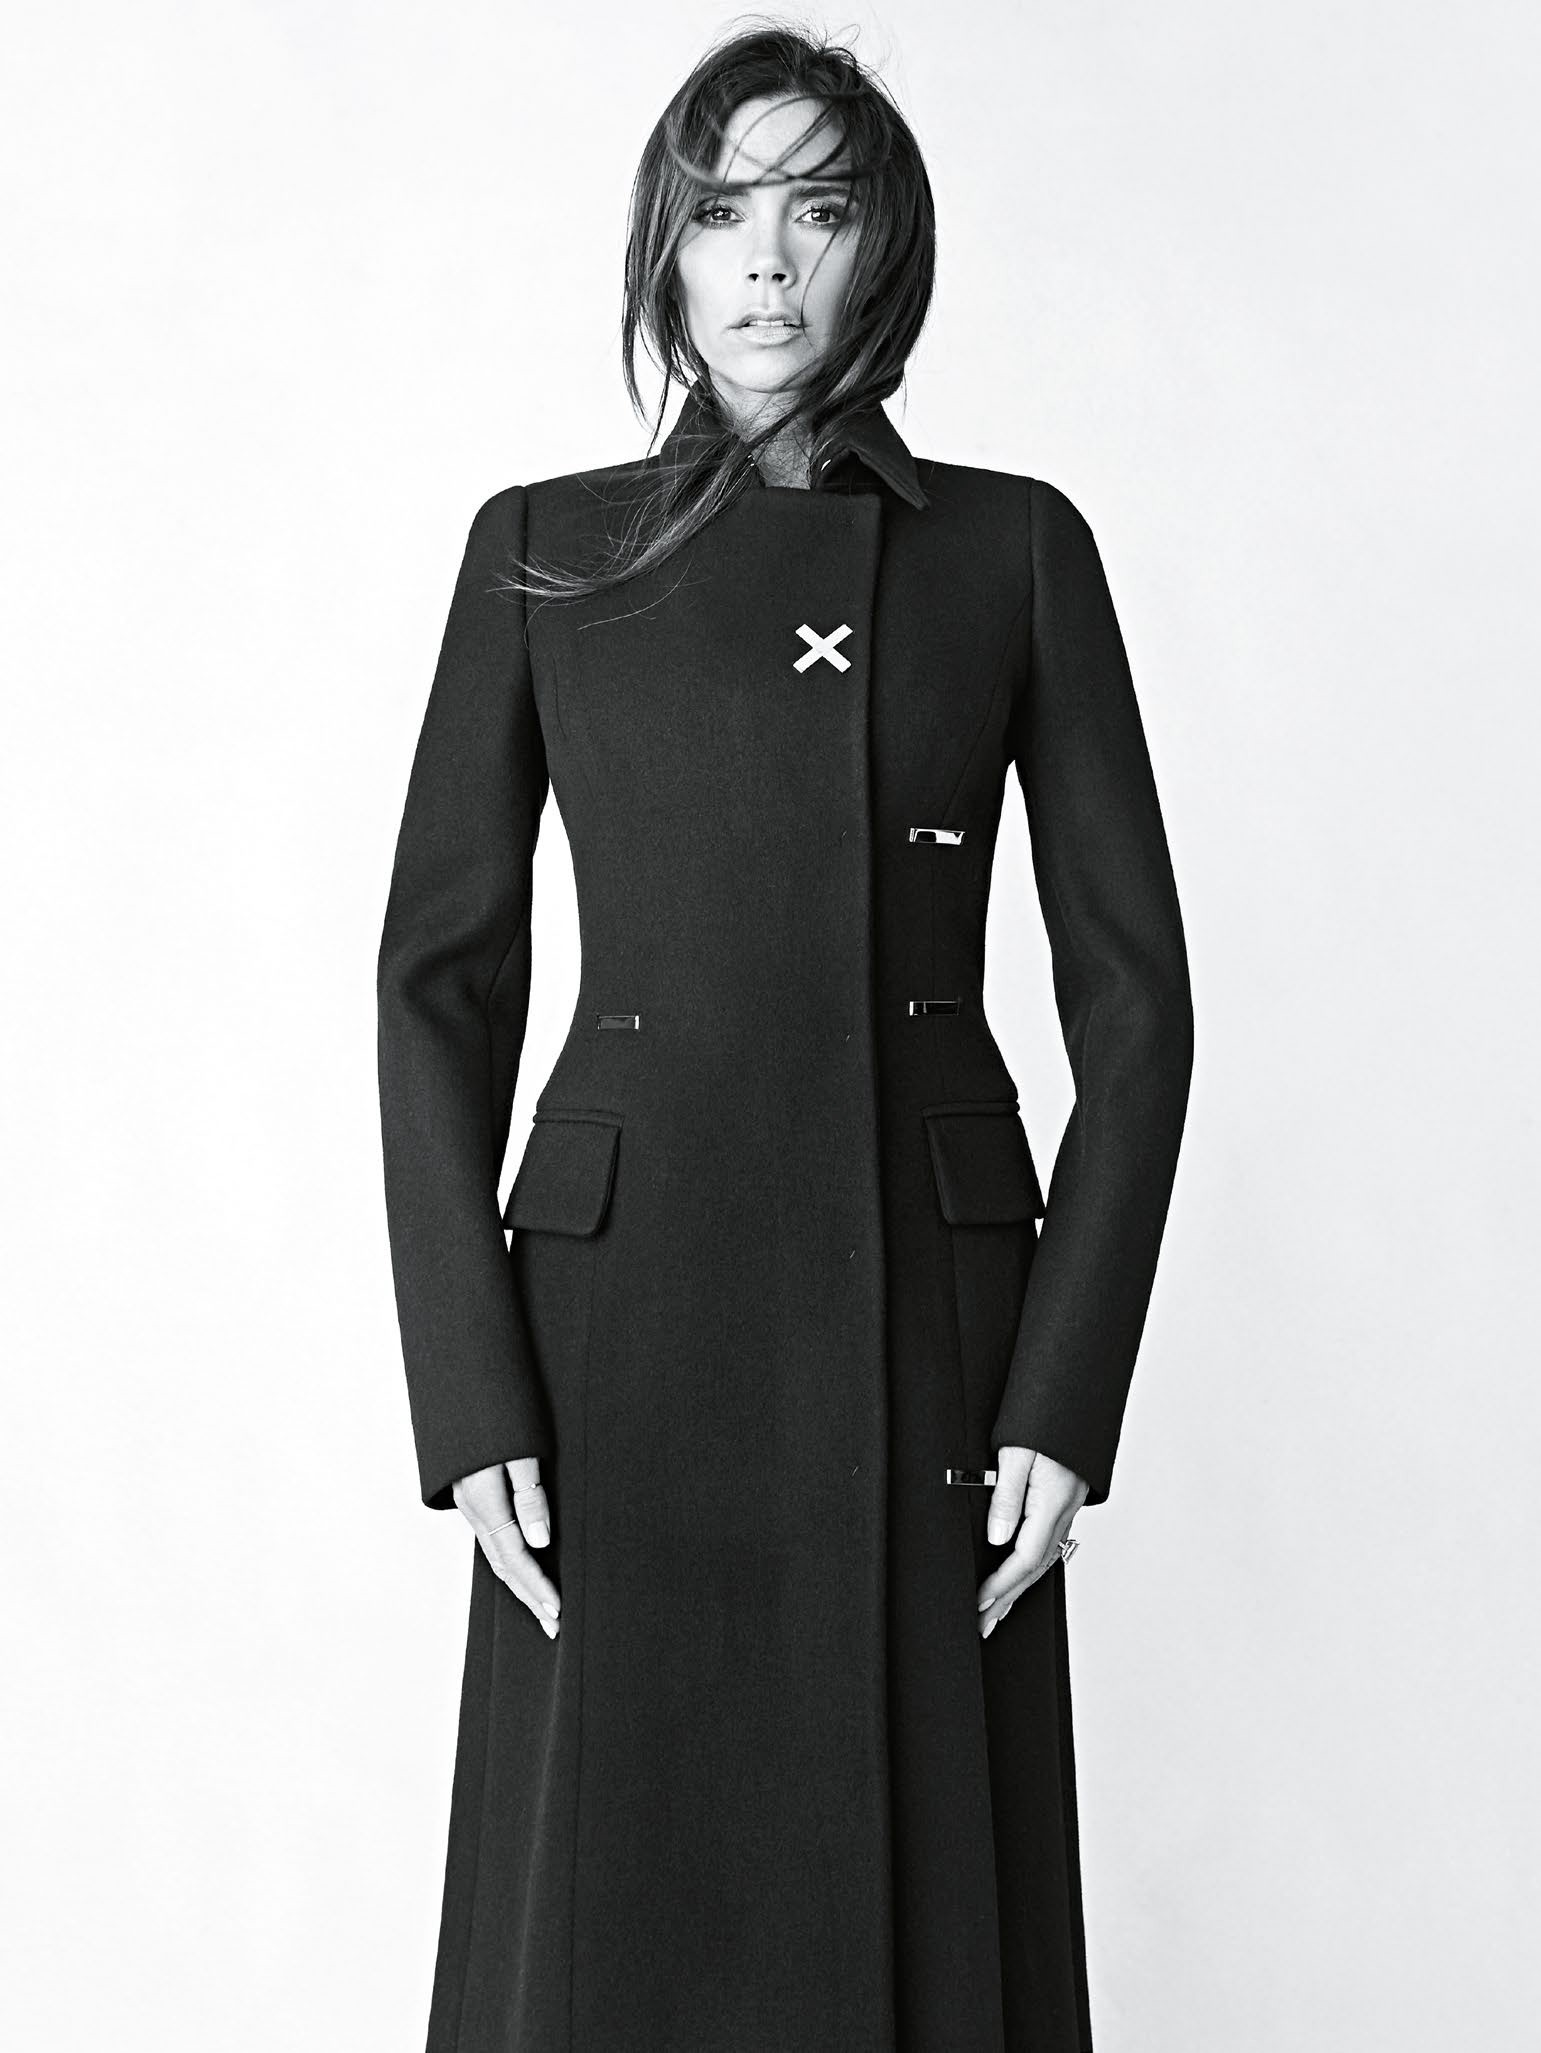 victoria-beckham-by-patrick-demarchelier-for-vogue-australia-august-2015-5